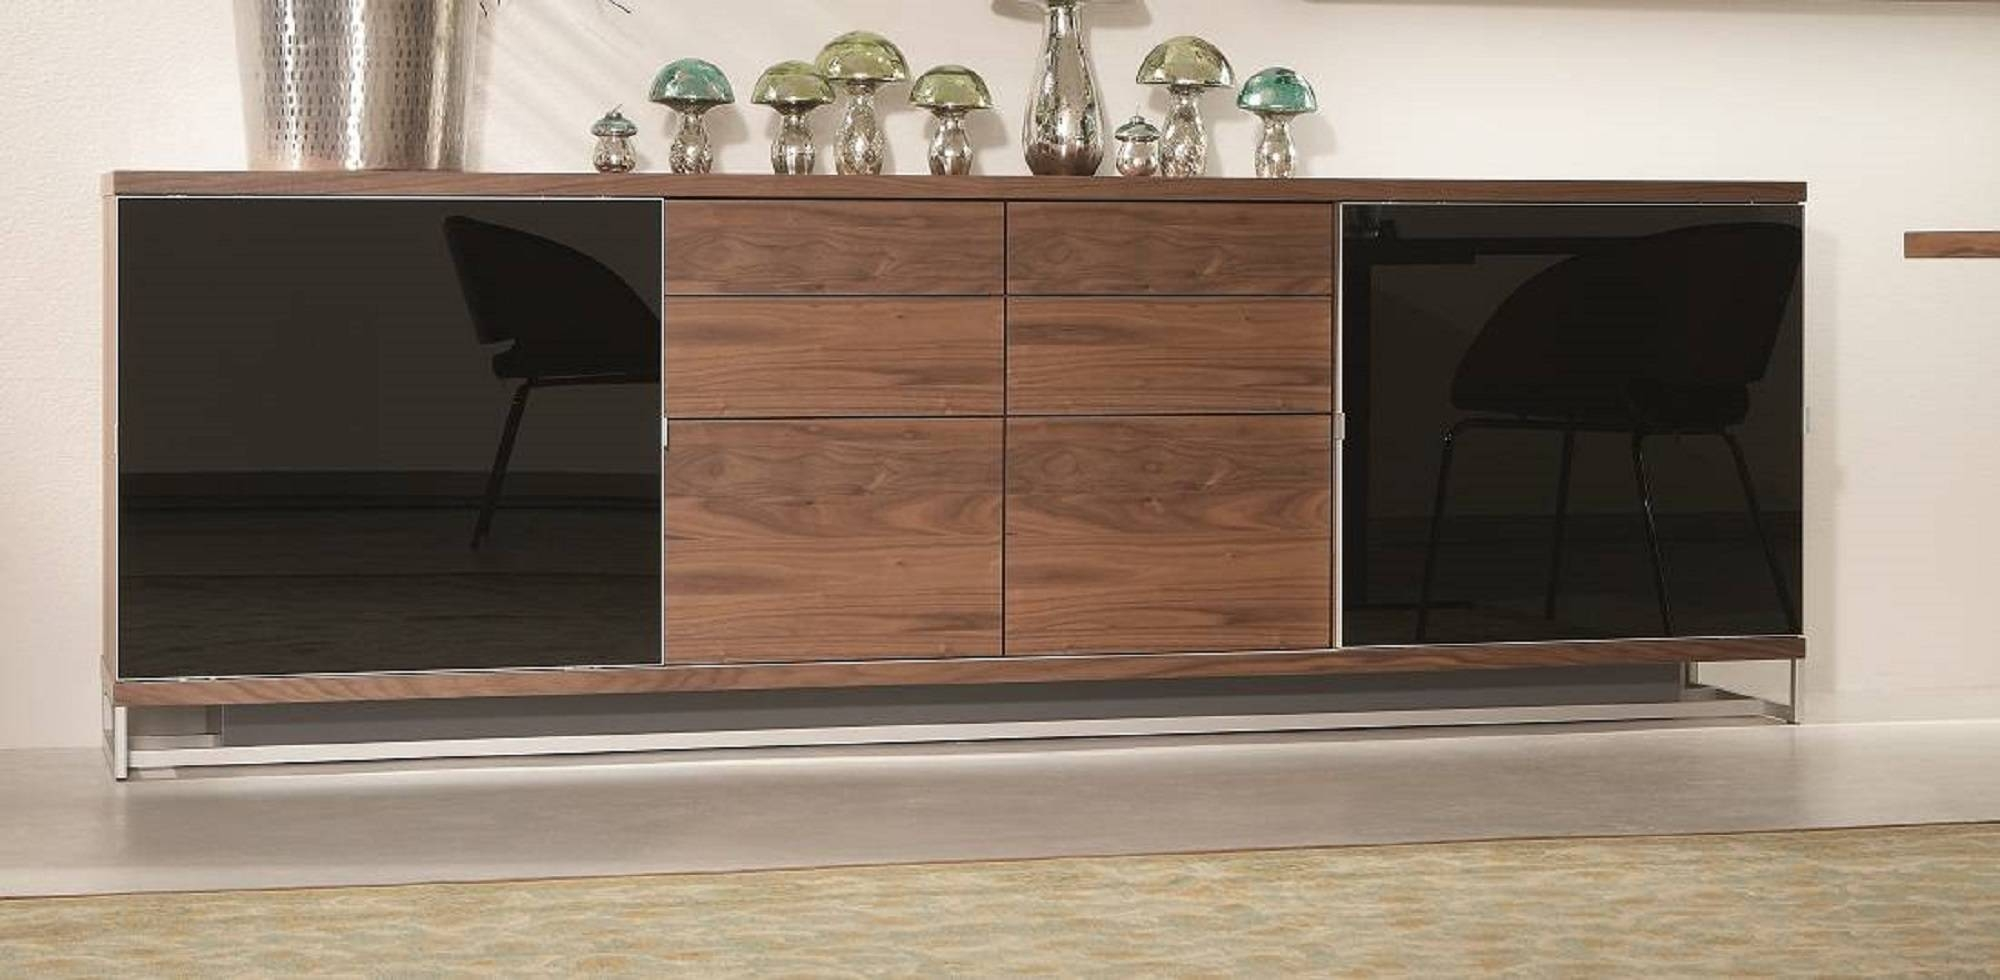 Hulsta Tameta Sideboards – Sideboards – Beadle Crome Interiors Regarding Current Hulsta Sideboards (#11 of 15)